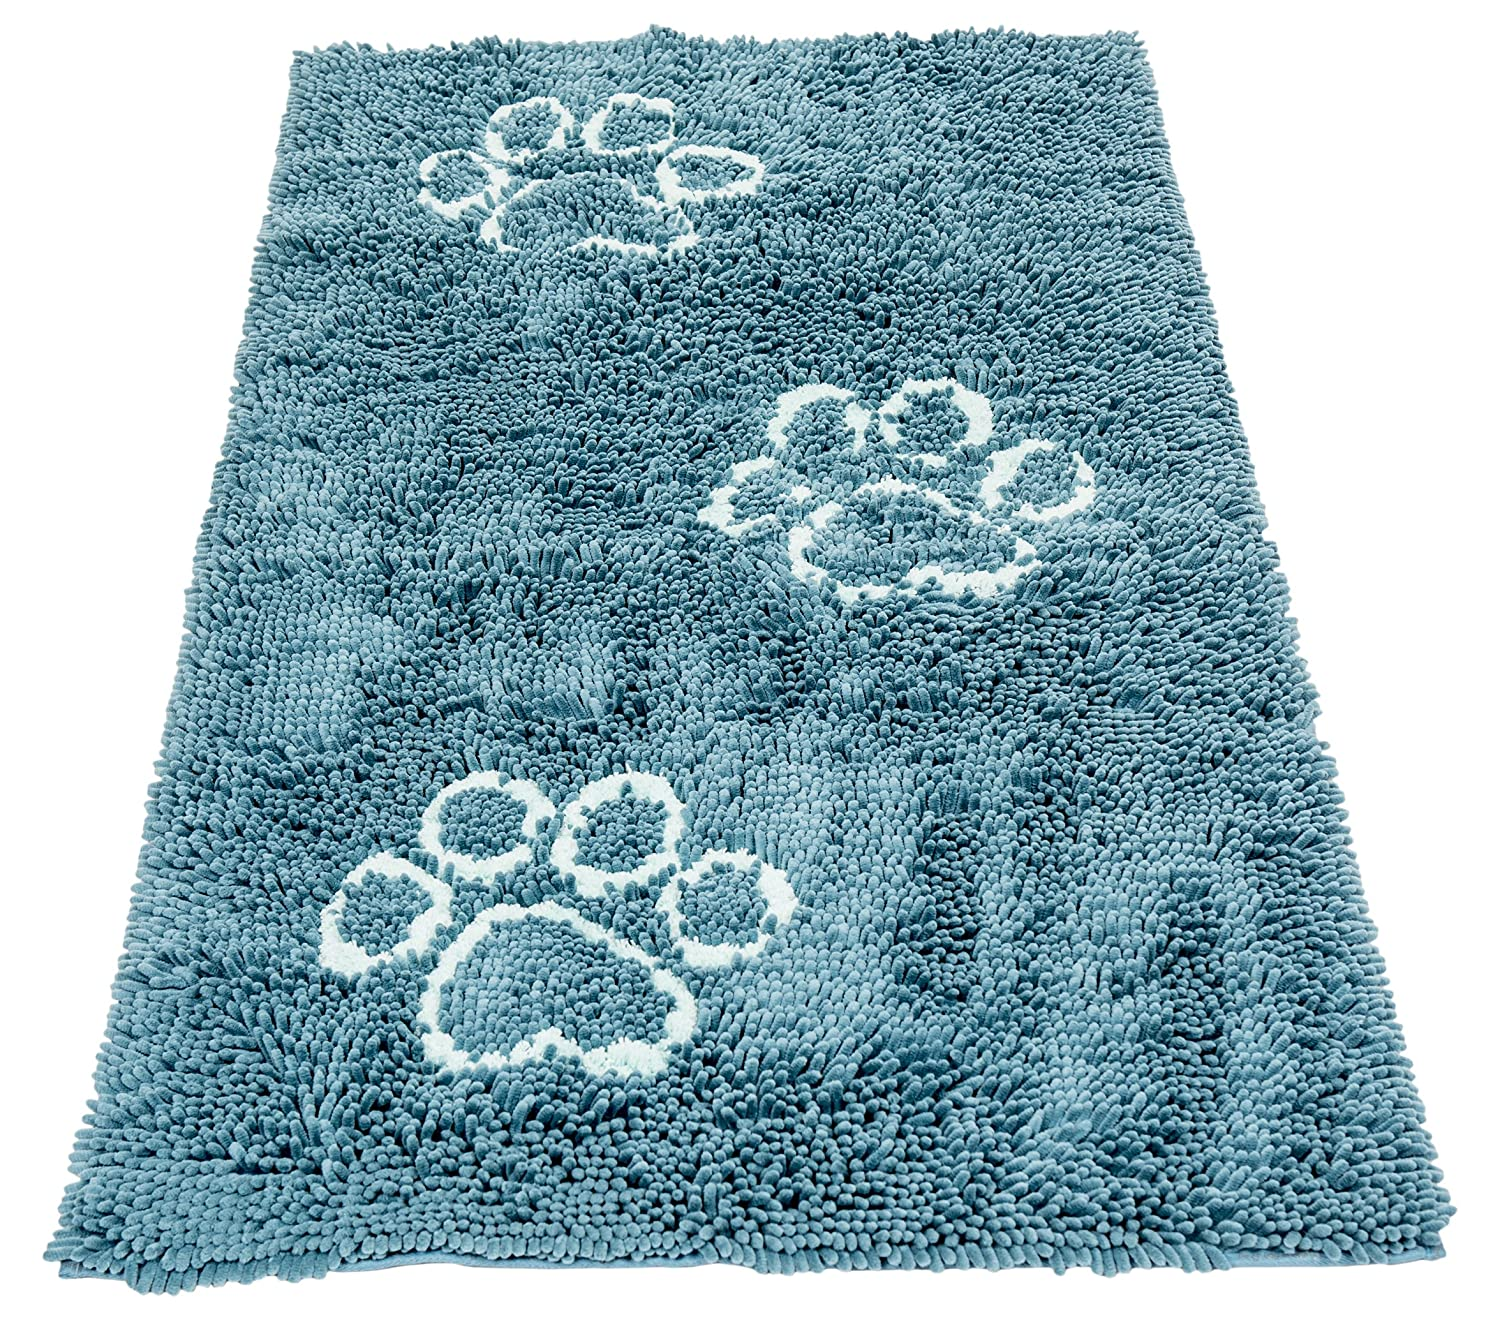 4. Dog Gone Smart Runner Dirty Dog Doormat